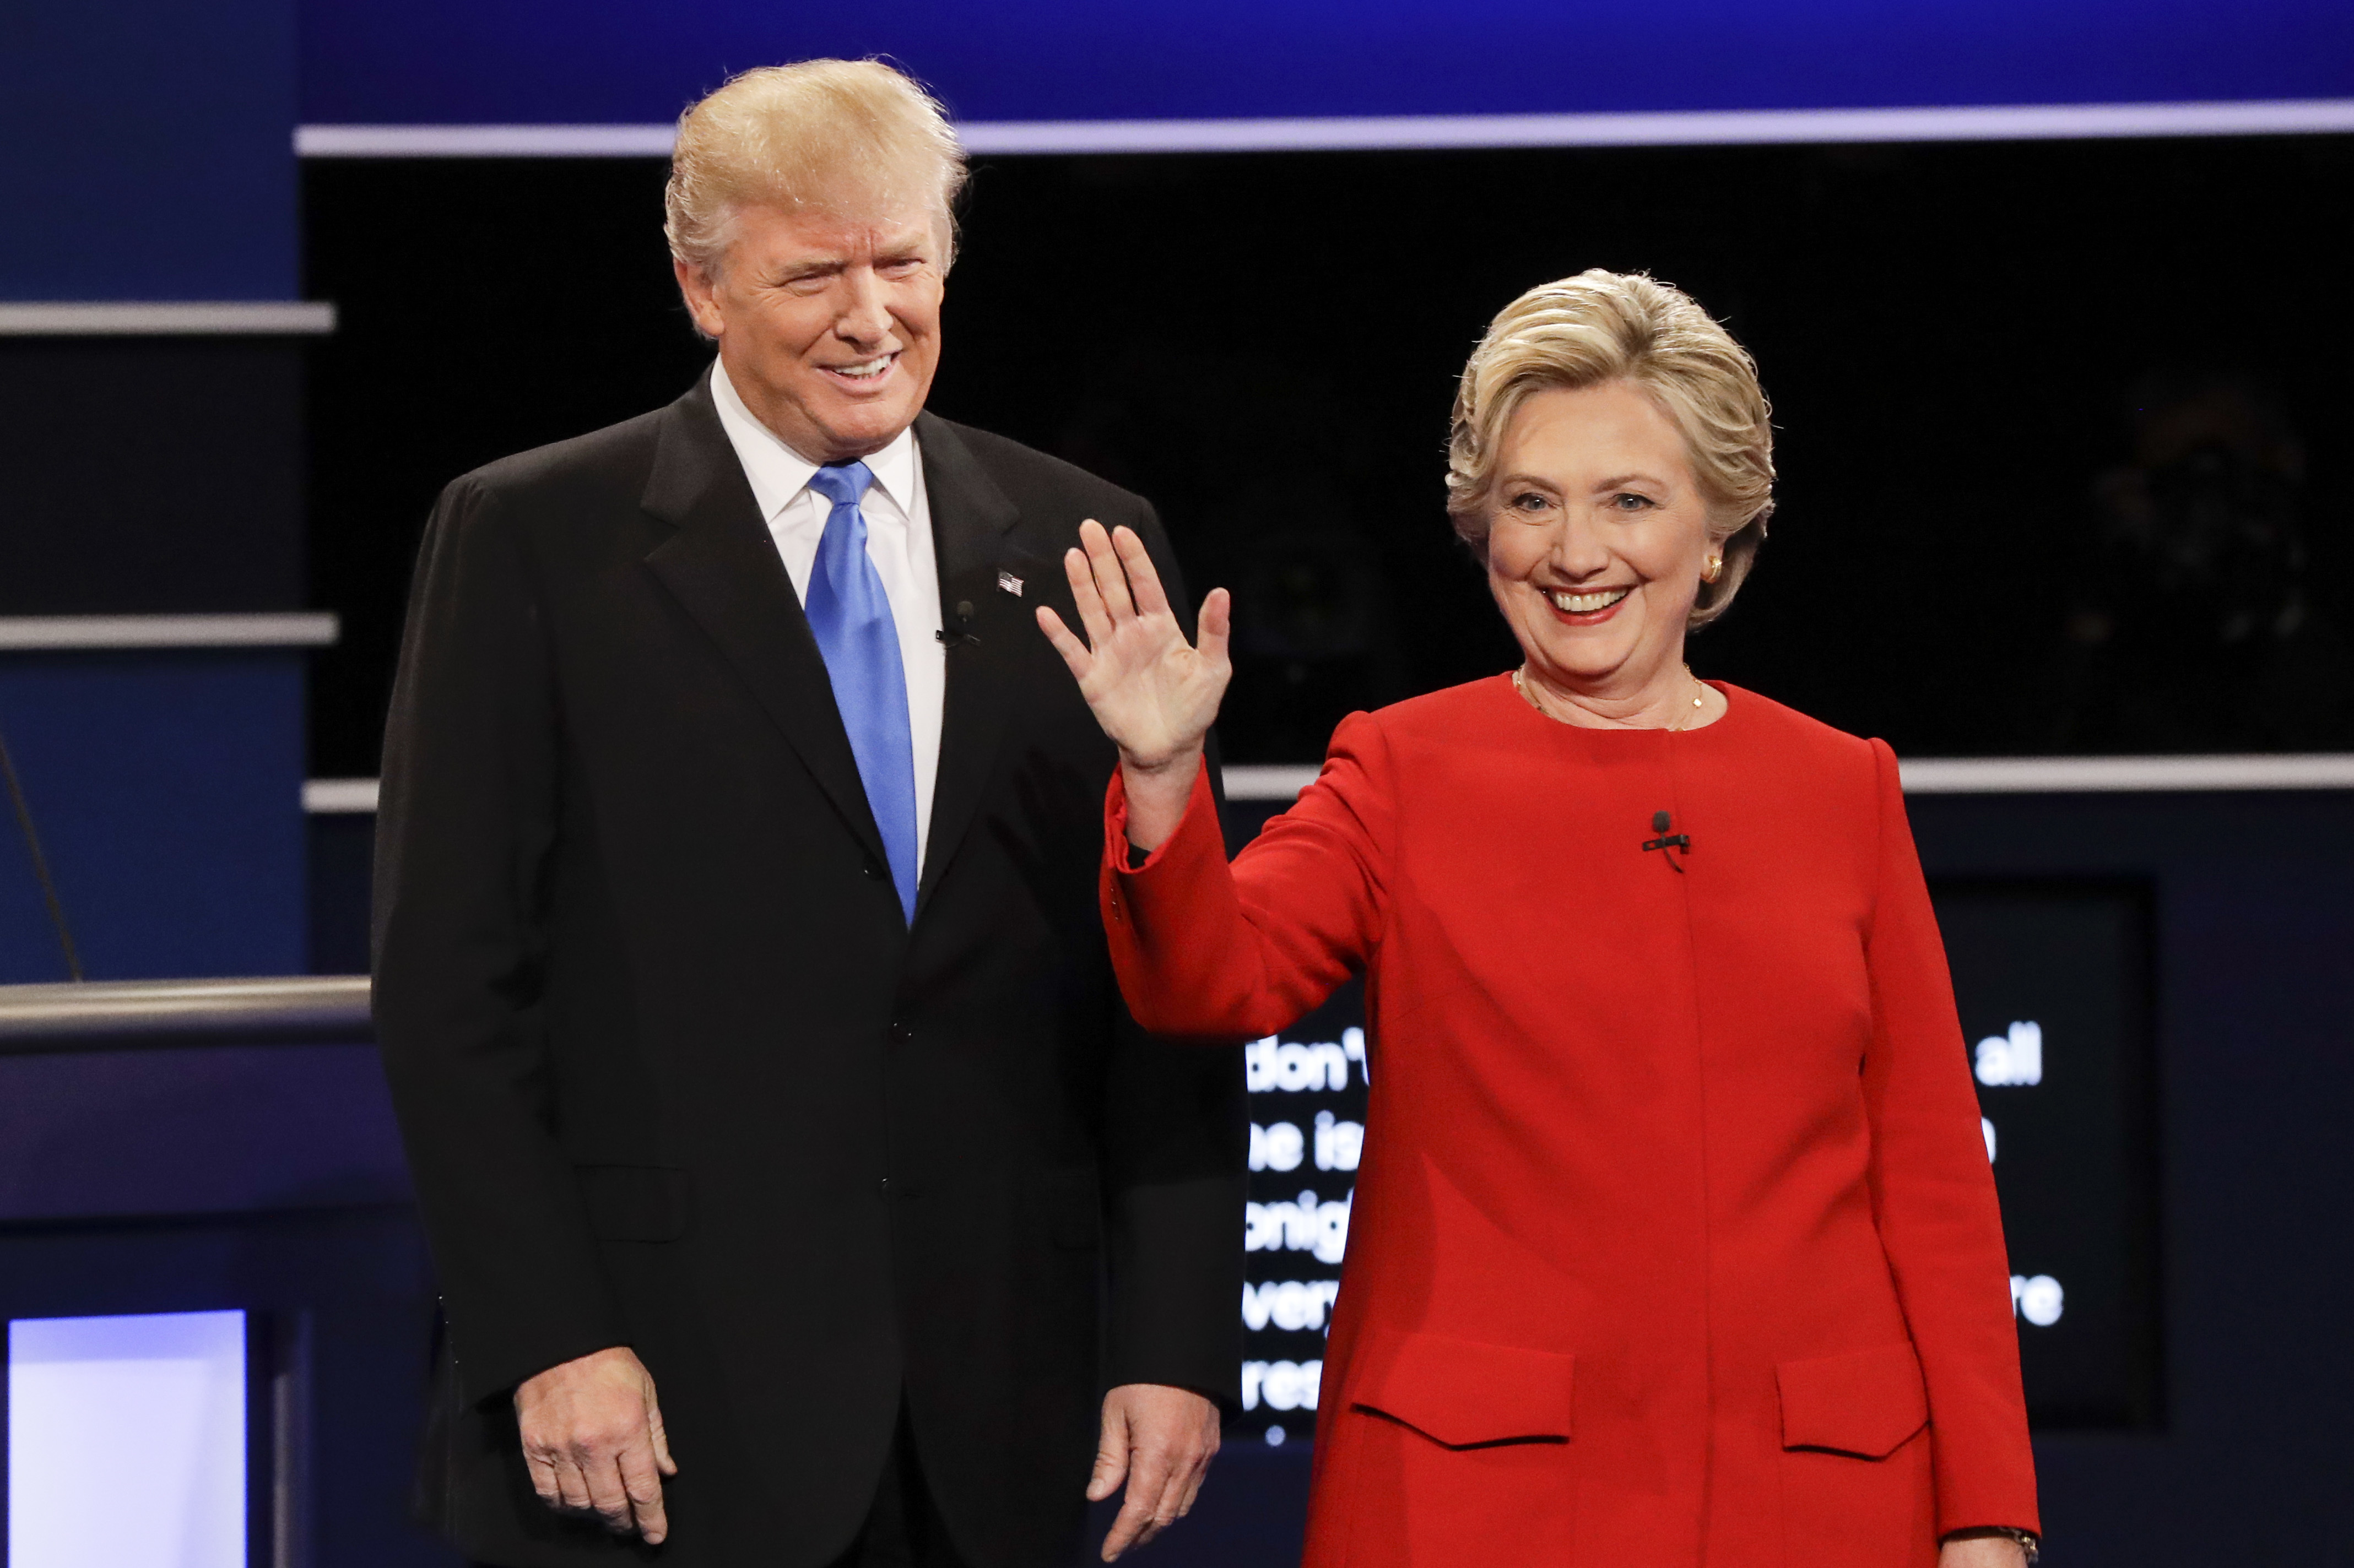 Donald Trump and Hillary Clinton are introduced during the presidential debate at Hofstra University in Hempstead, NY on Sept. 26, 2016.